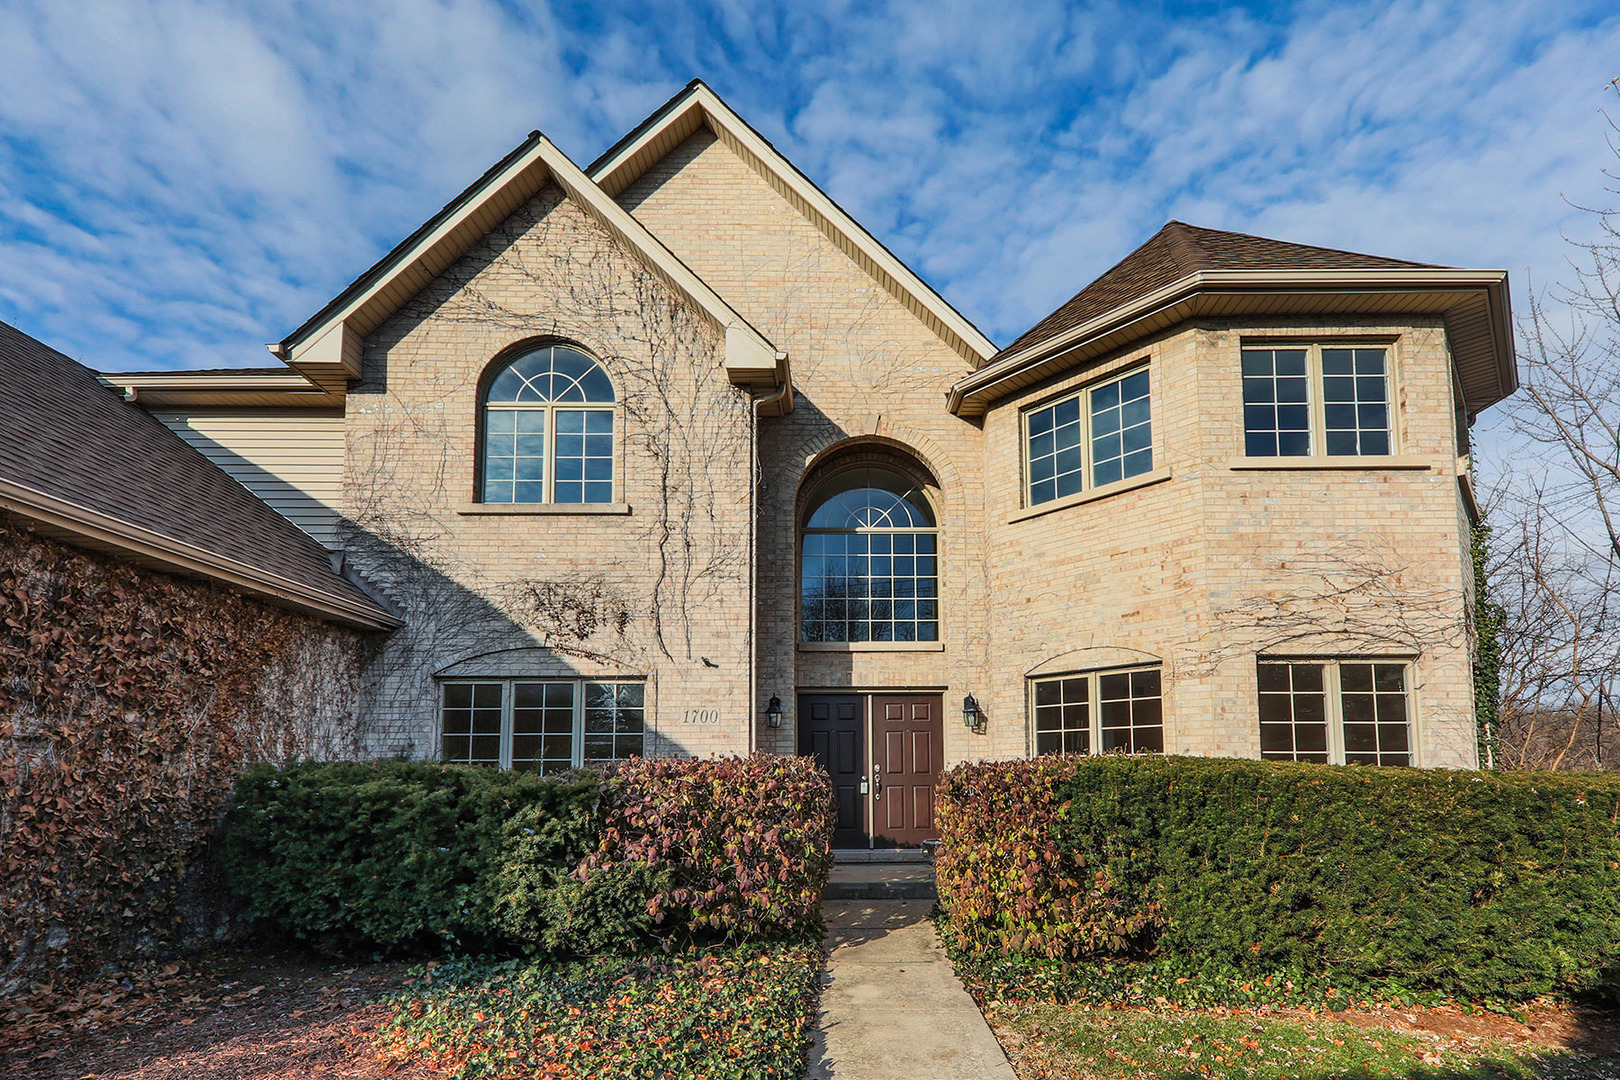 Photo for 1700 Maple Avenue, DOWNERS GROVE, IL 60515 (MLS # 10144104)